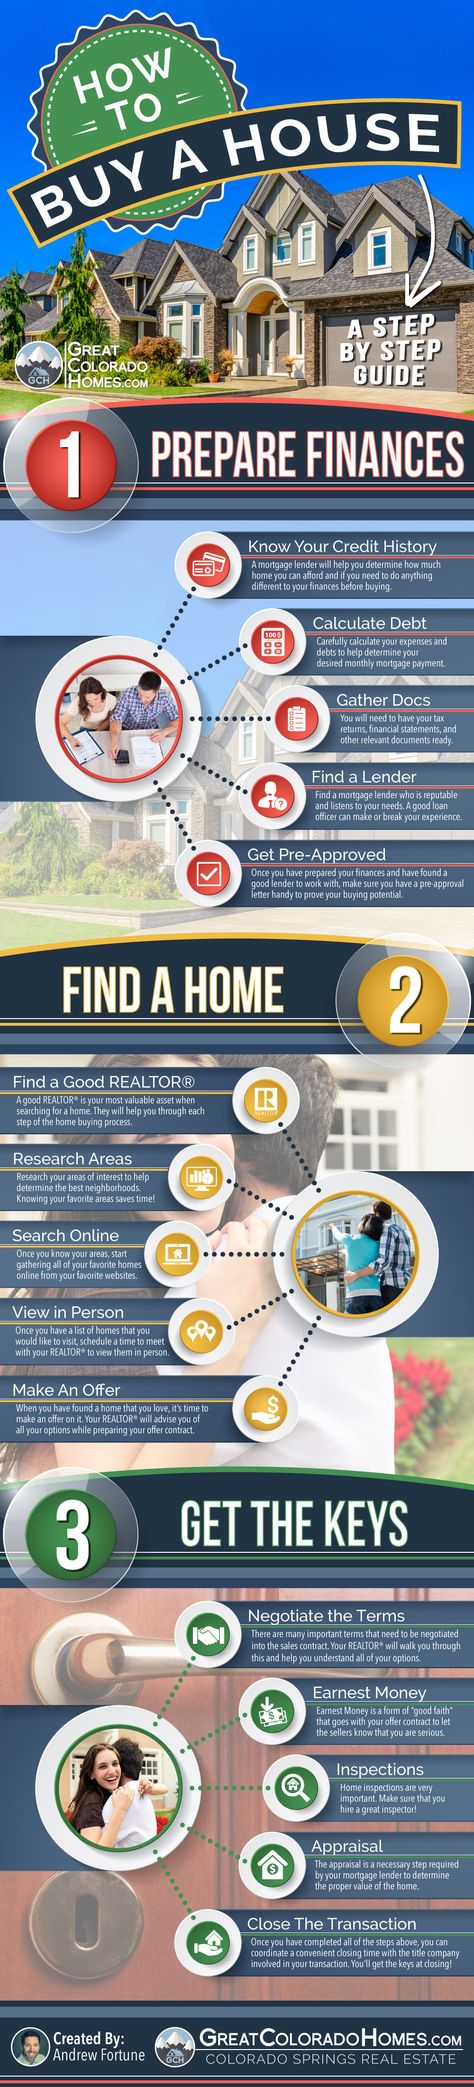 How To Buy A House: A Step-By-Step Guide